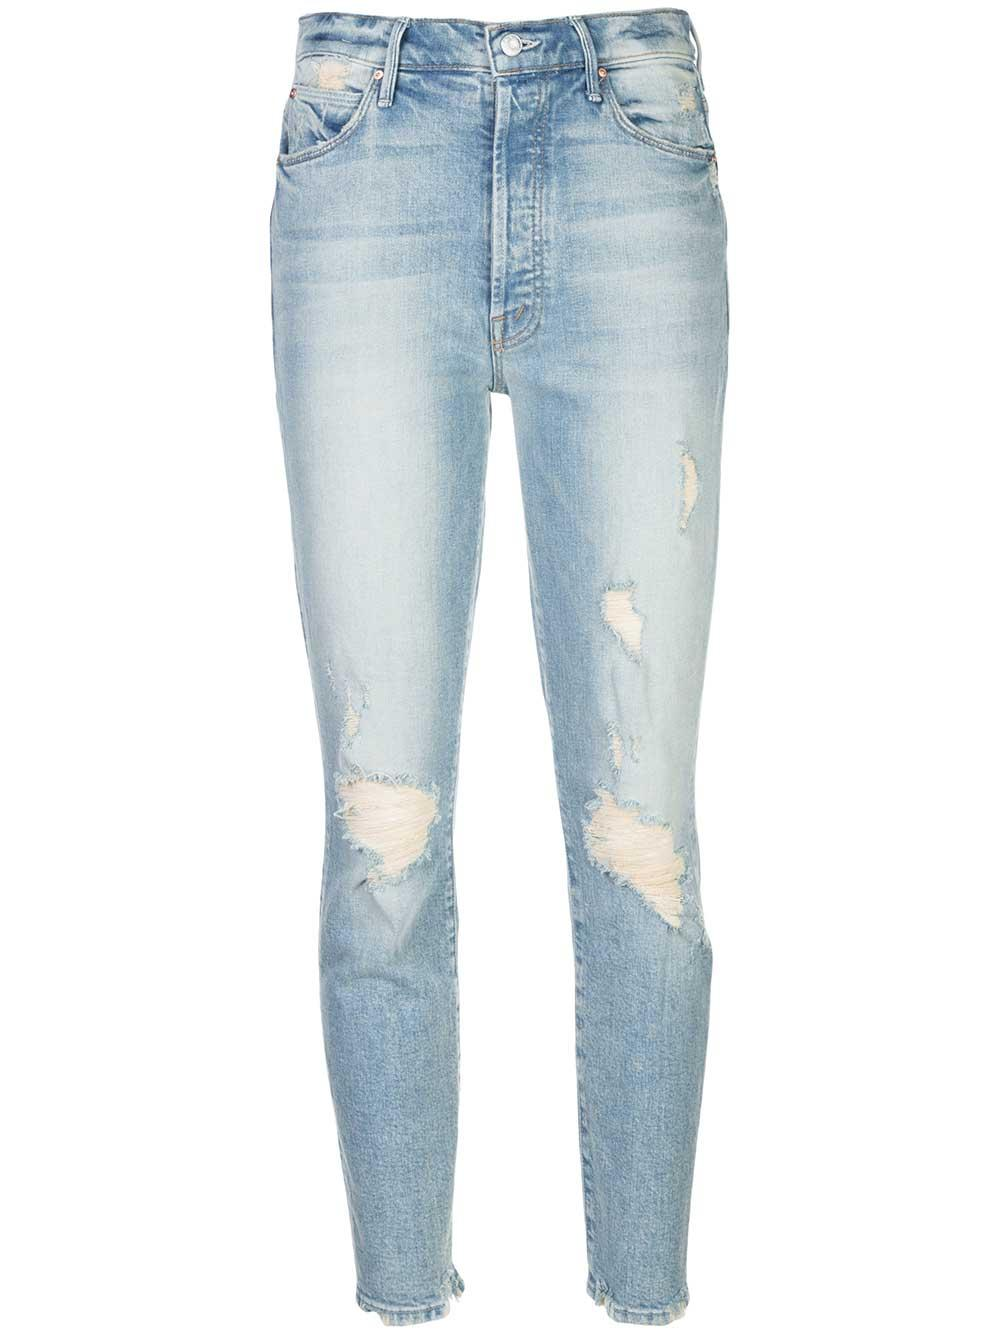 The Super Stunner Rigid Ankle Distressed Jean